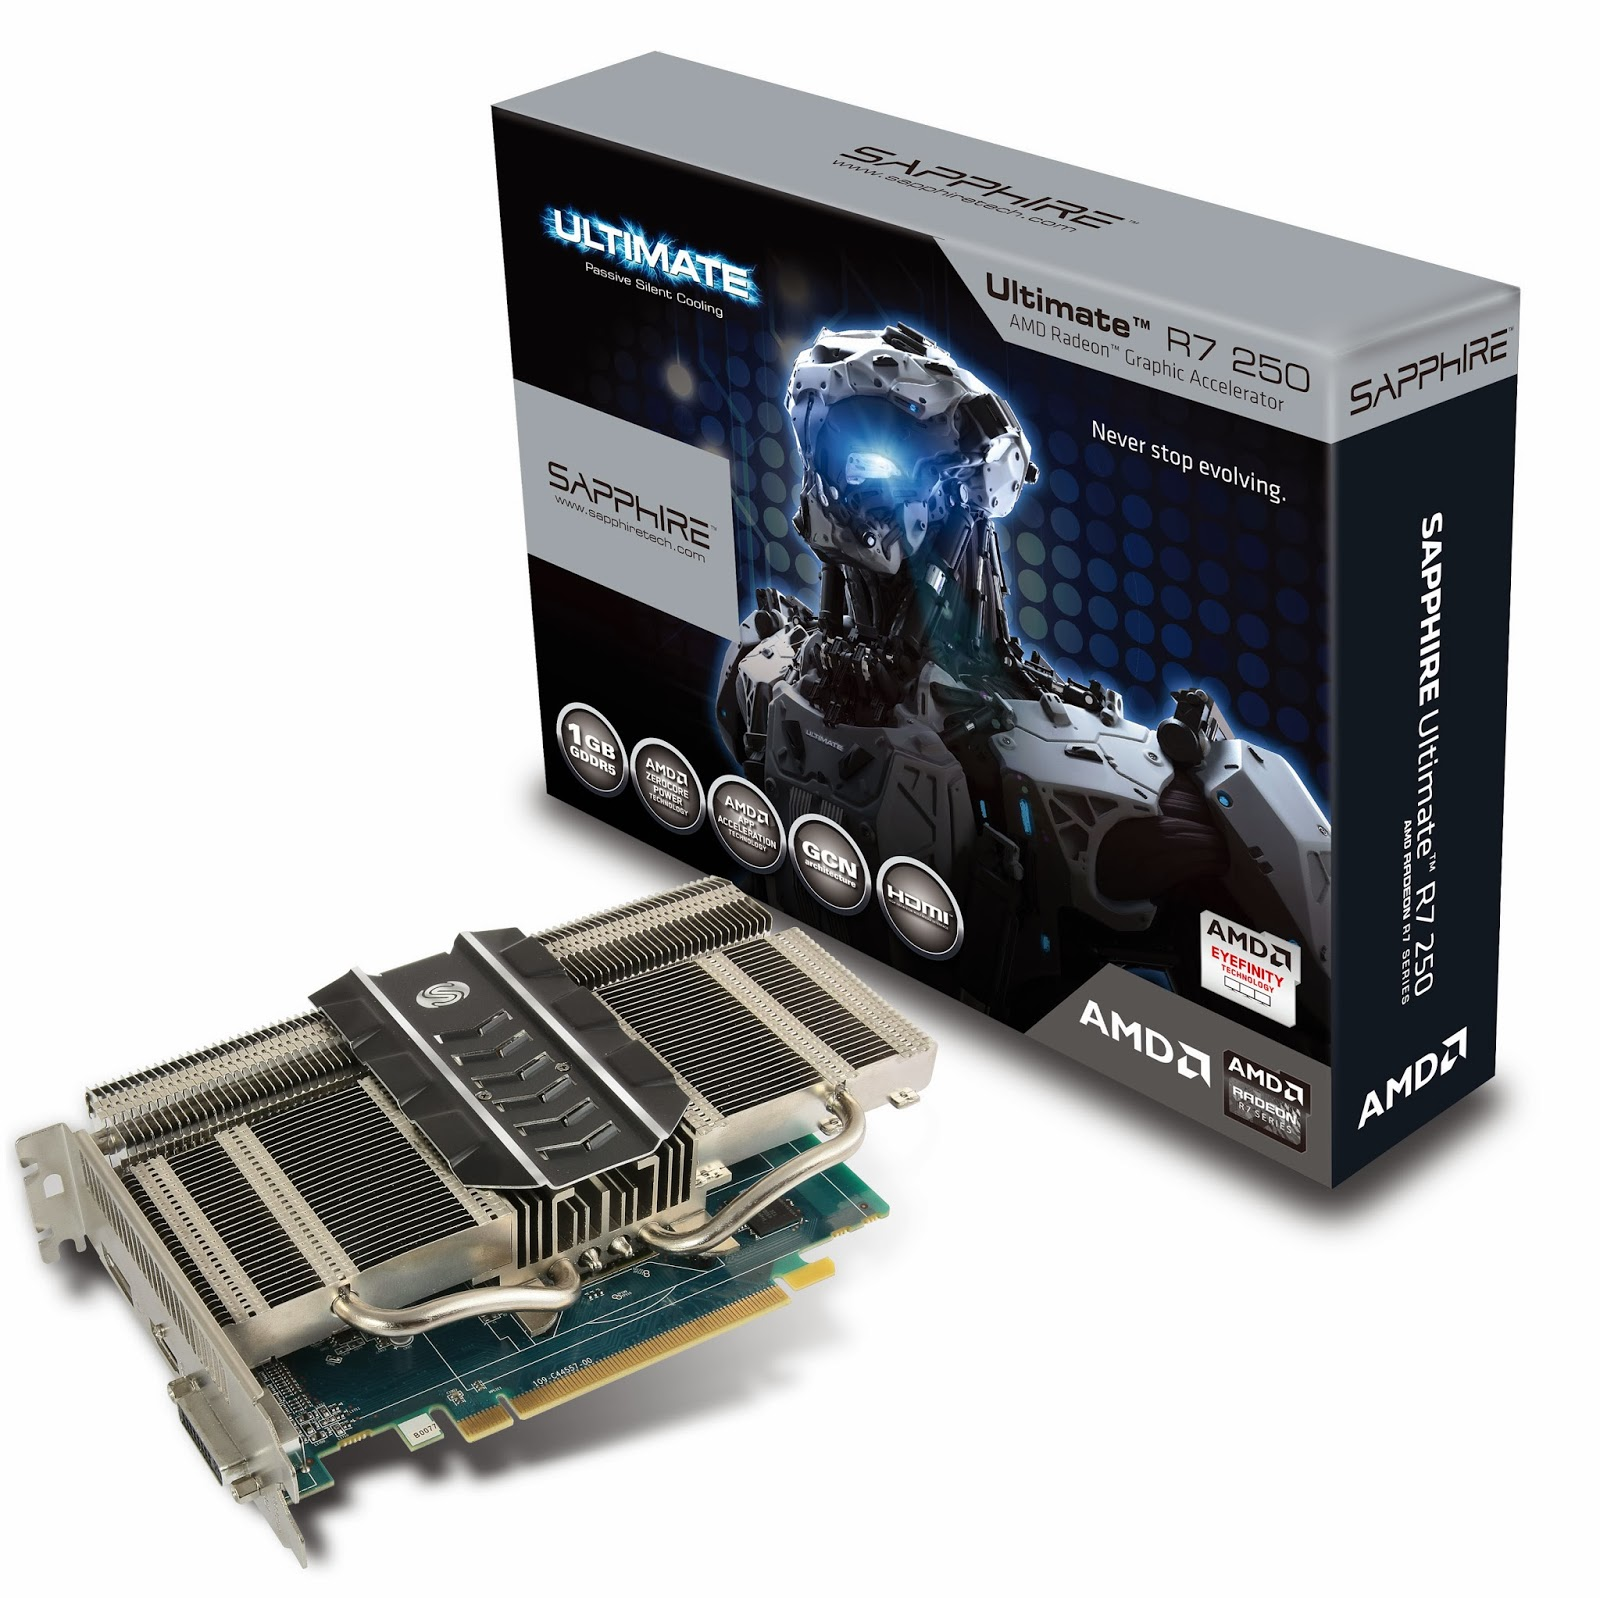 SAPPHIRE ULTIMATE IS FIRST SILENT R-SERIES CARD 5